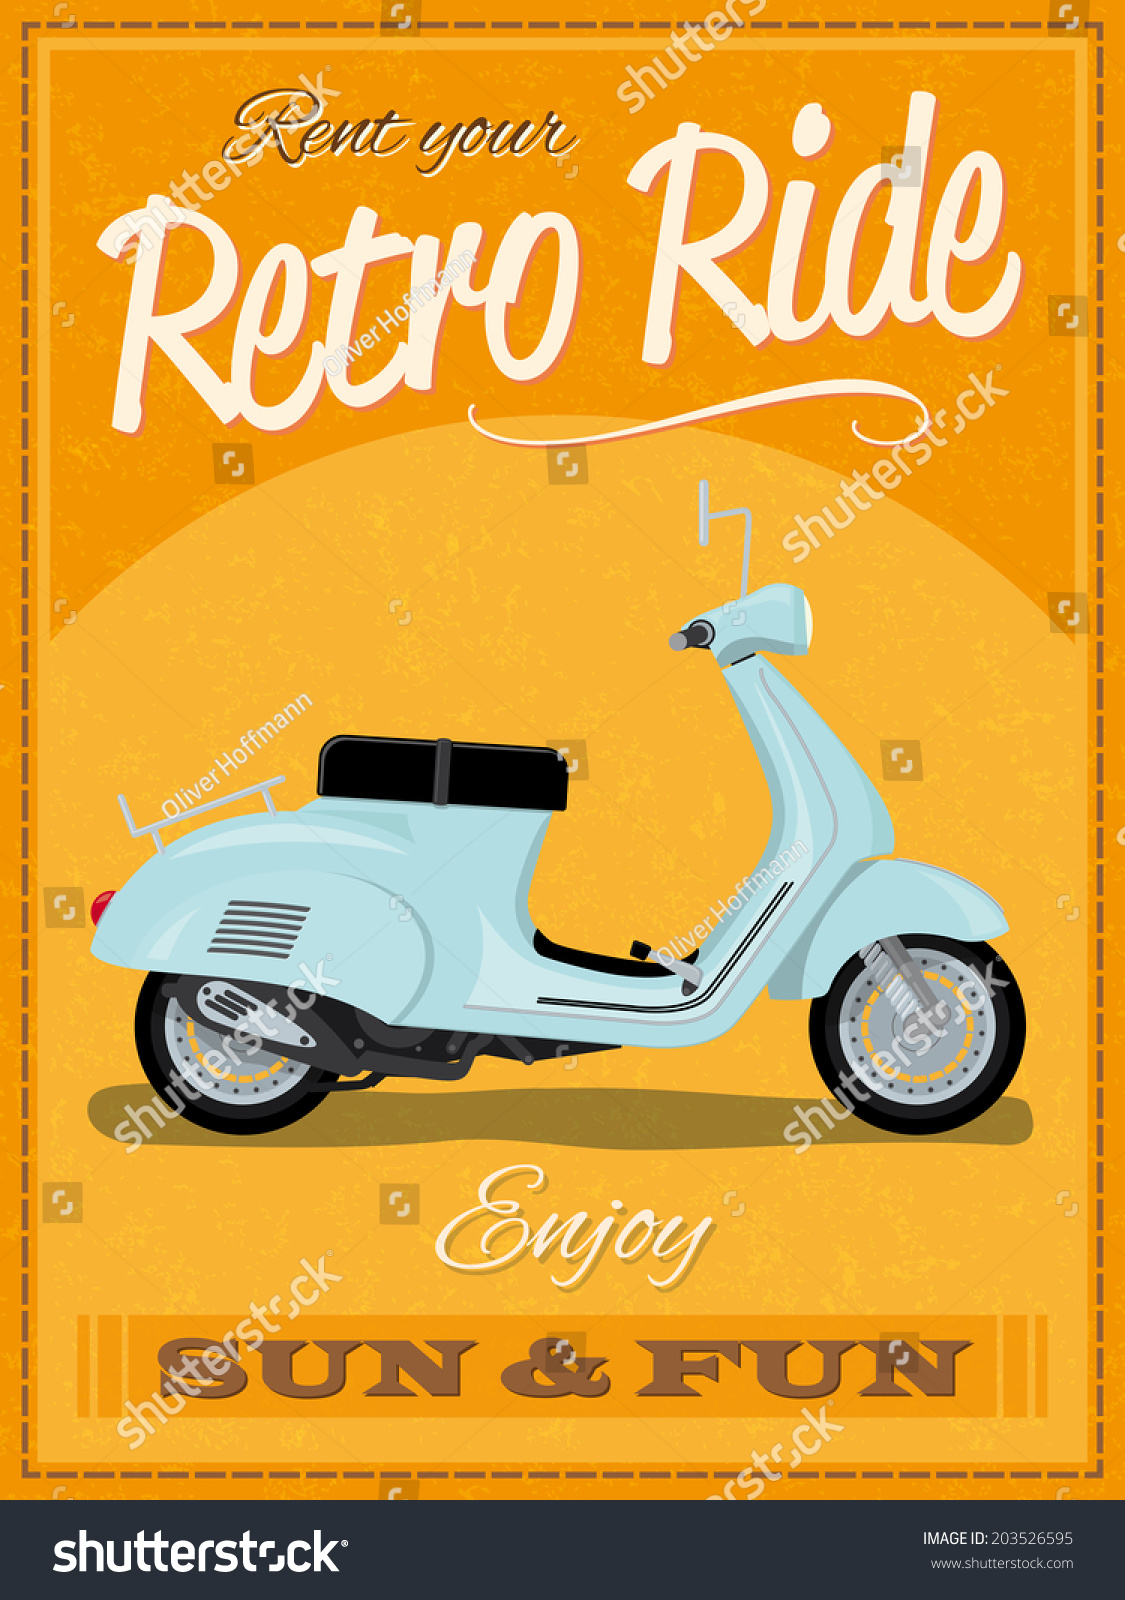 Retro poster design with vintage scooter illustration sample text banner and grunge texture